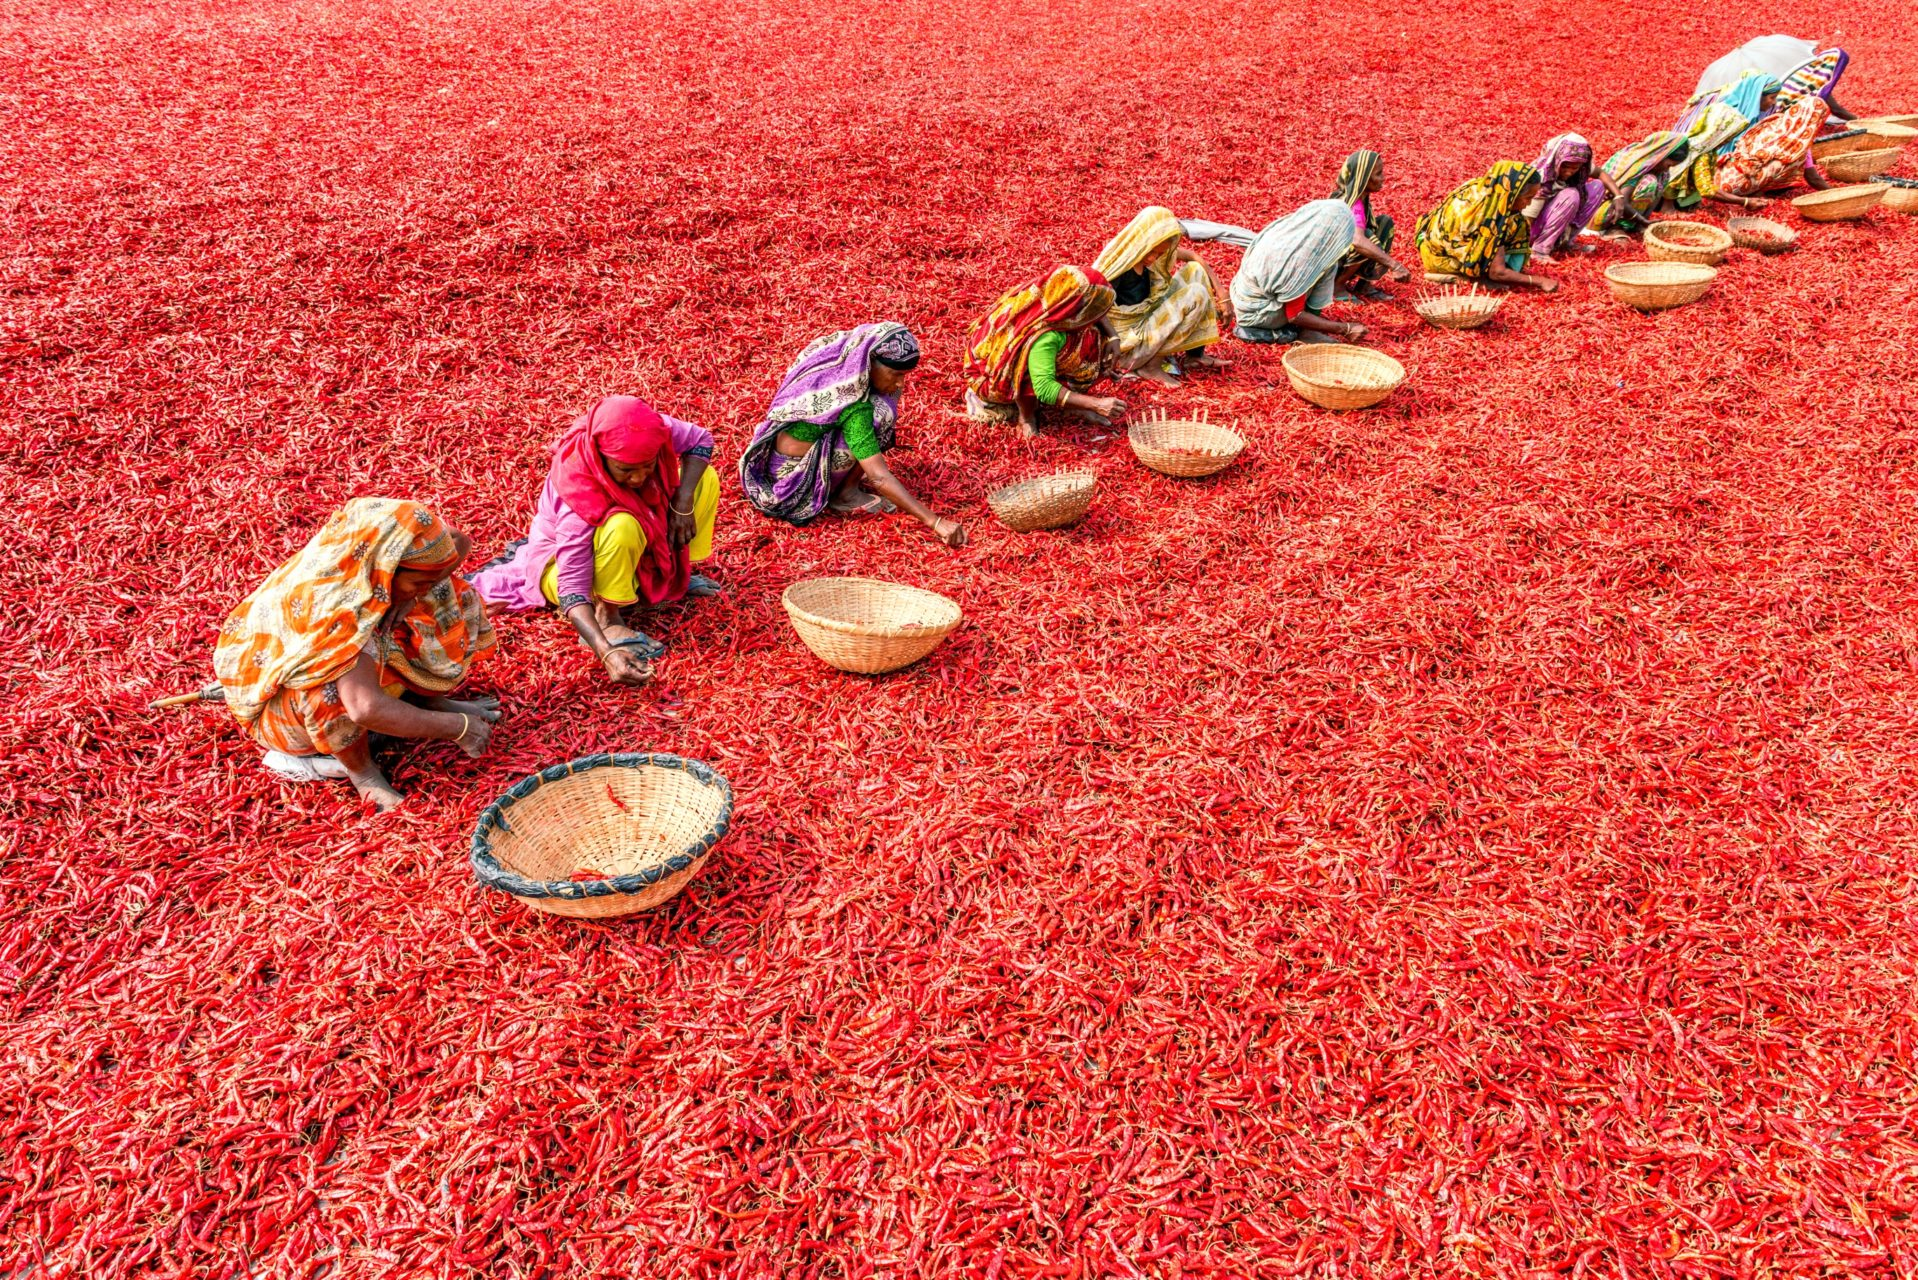 women collecting chilies in a field full of red chilies